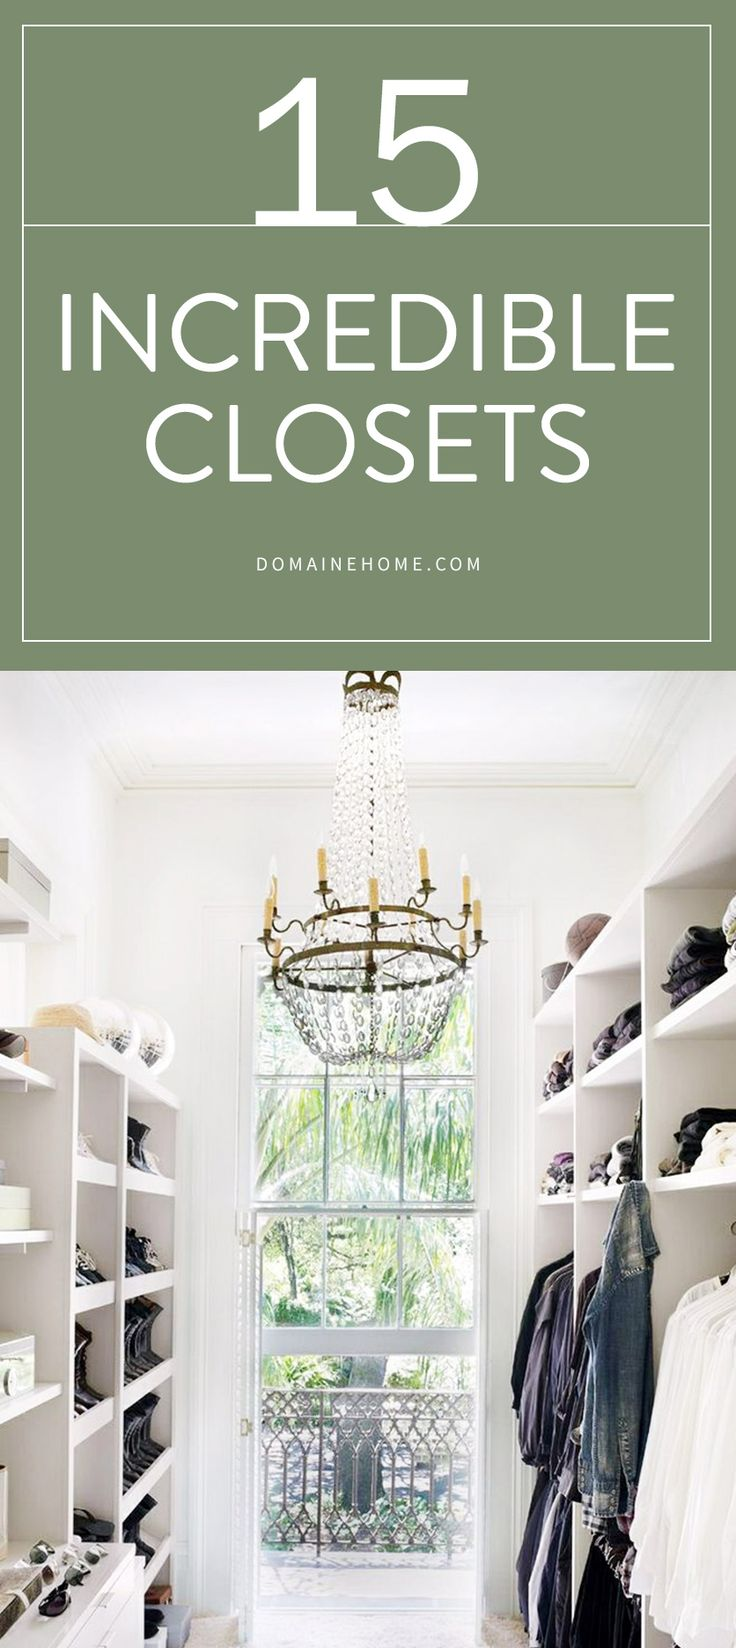 The most luxurious dream closets with stunning interior design AND organization.